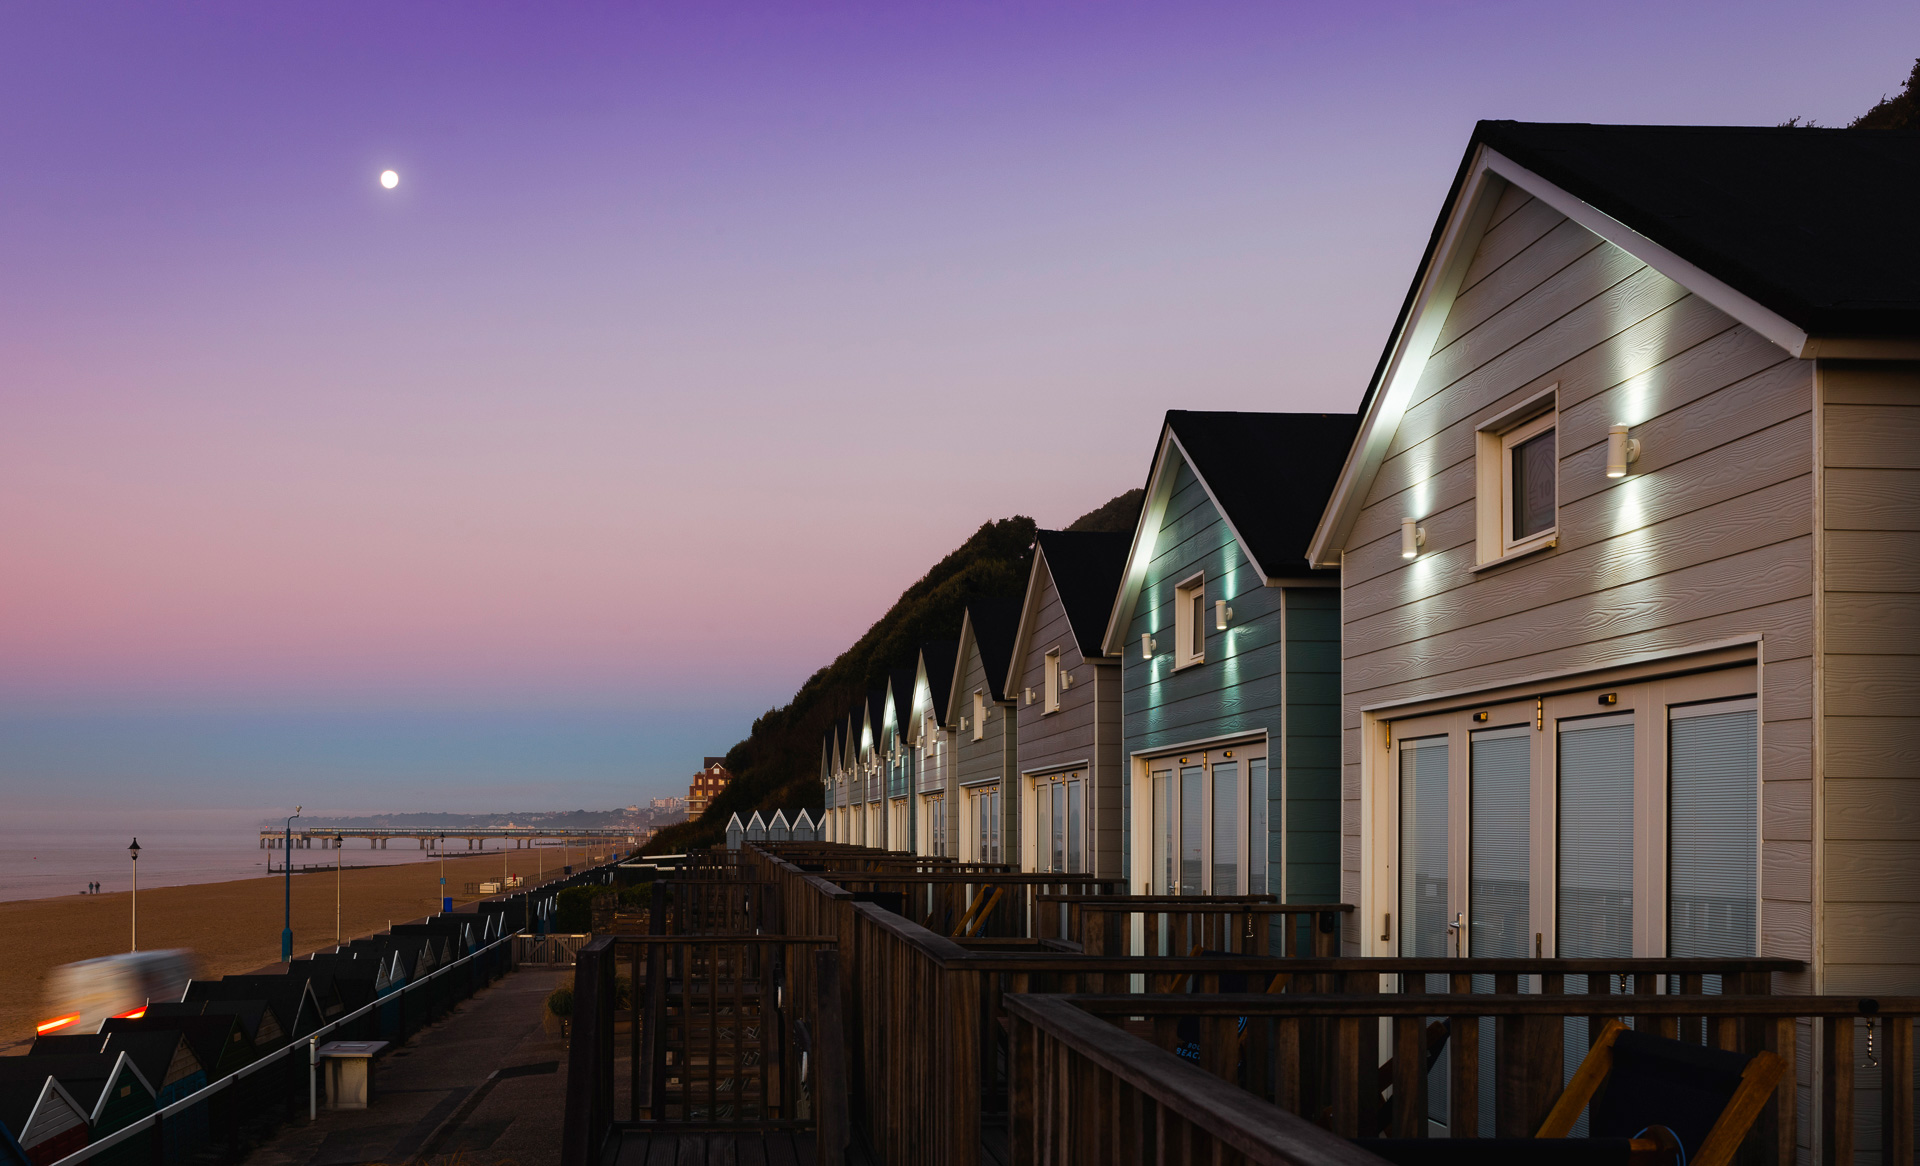 Moon and purple sky over the beach huts